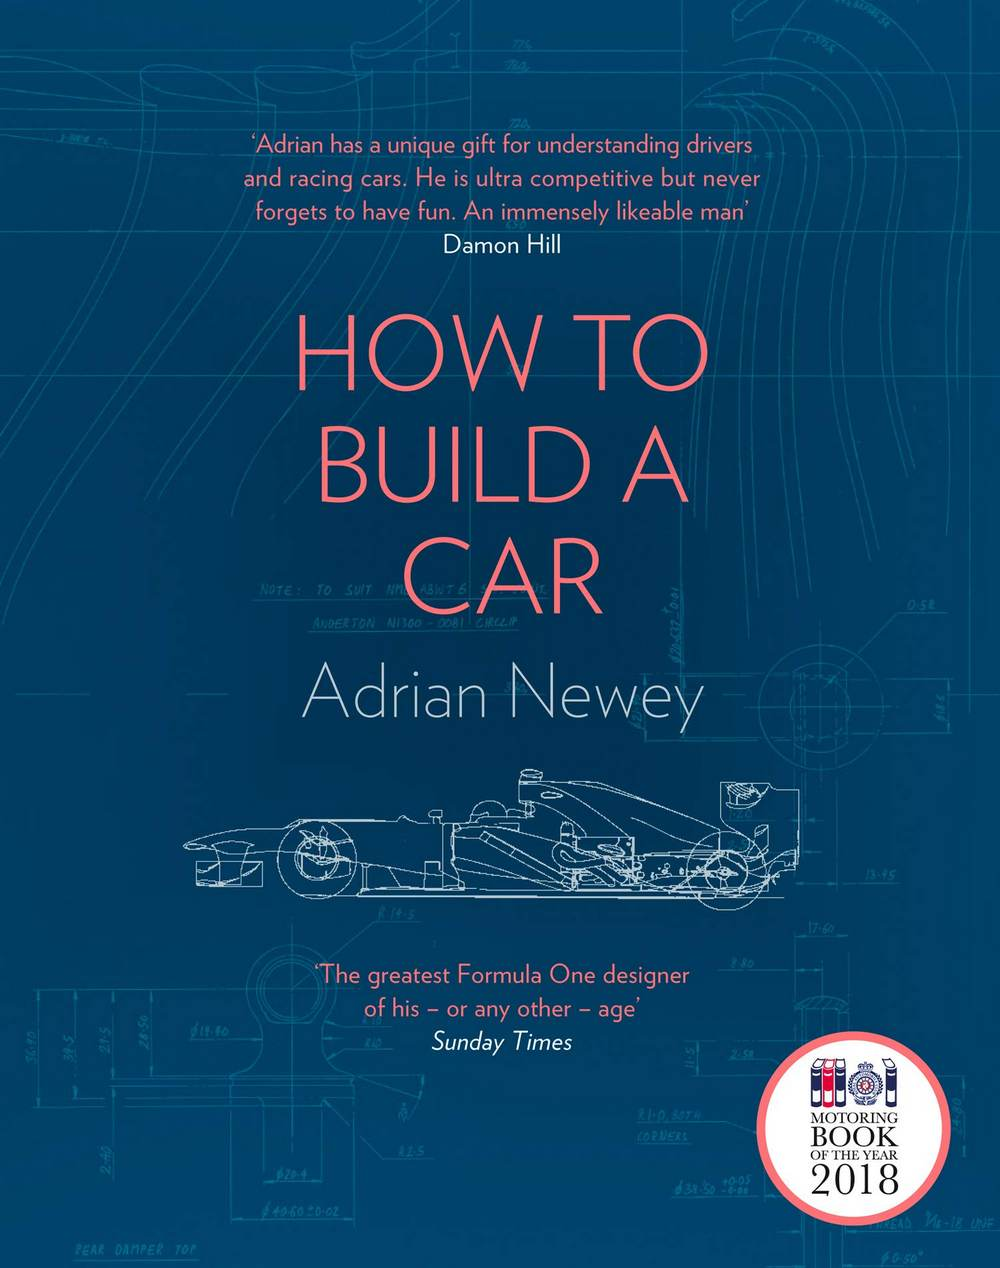 How to build a car: The autobiography of the world's greatest Formula 1 designer- Adrian Newey. Image credit: Amazon